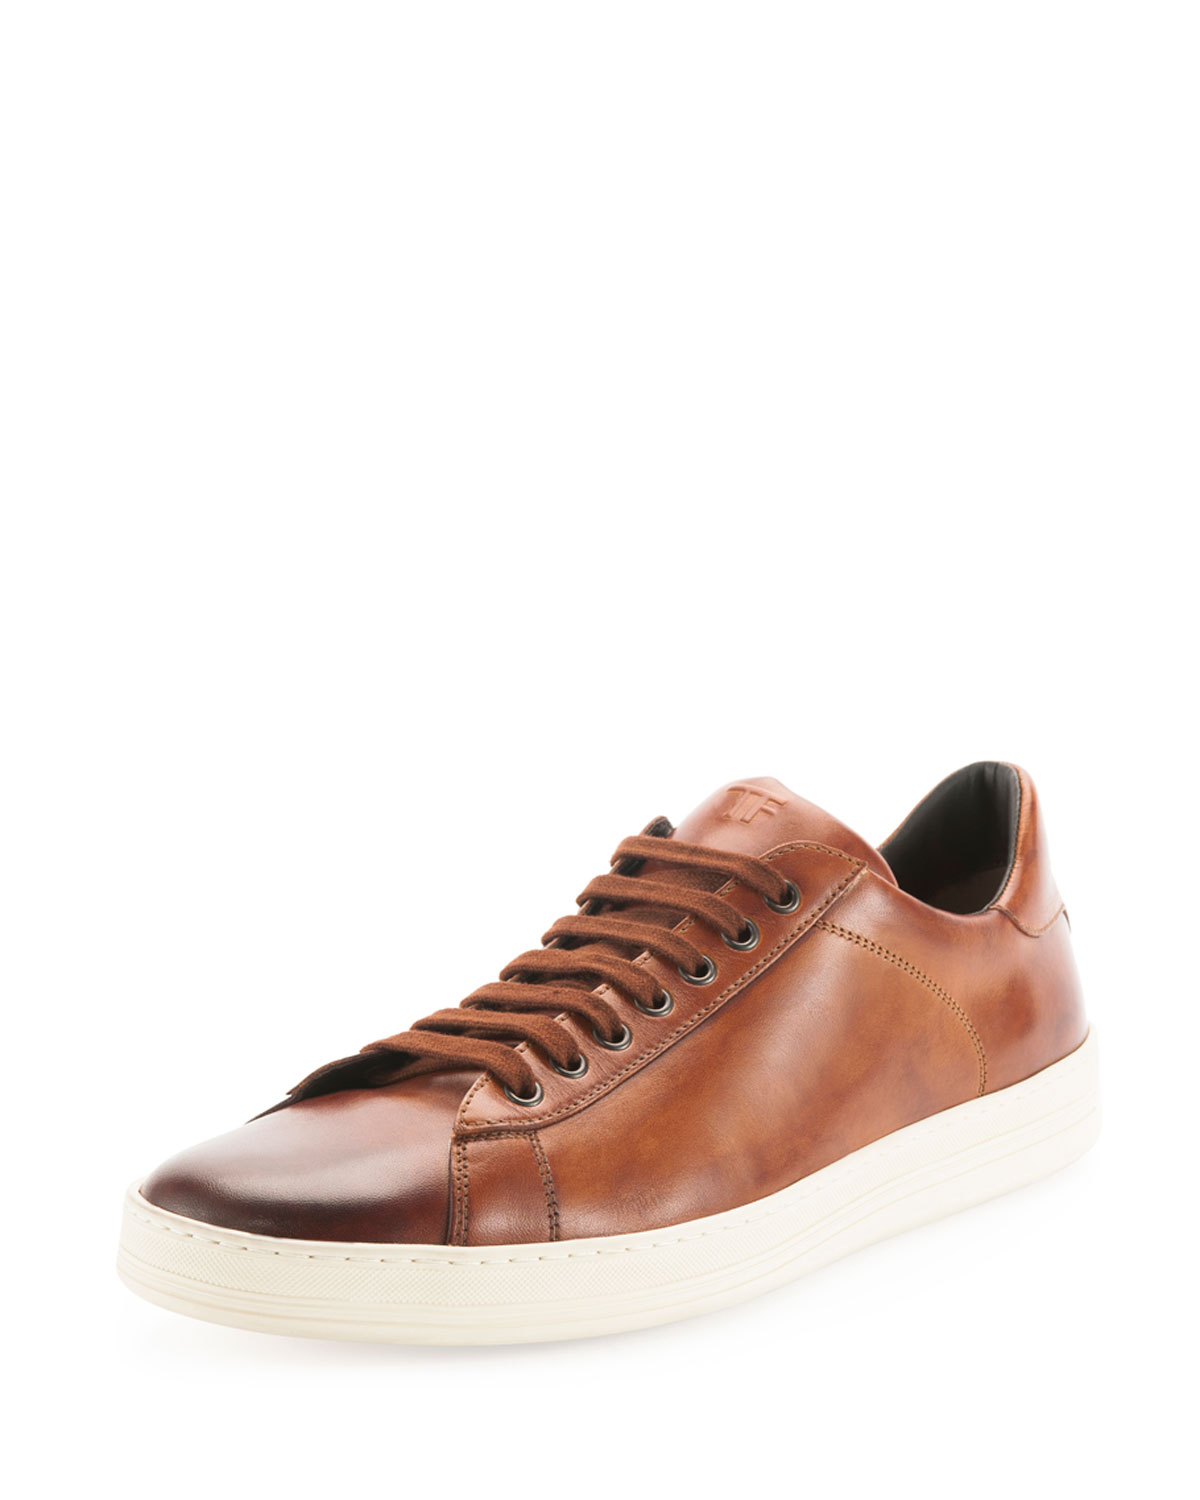 Sneaker smooth leather Hole pattern Logo brown Tom Ford Big Discount tf2k1K